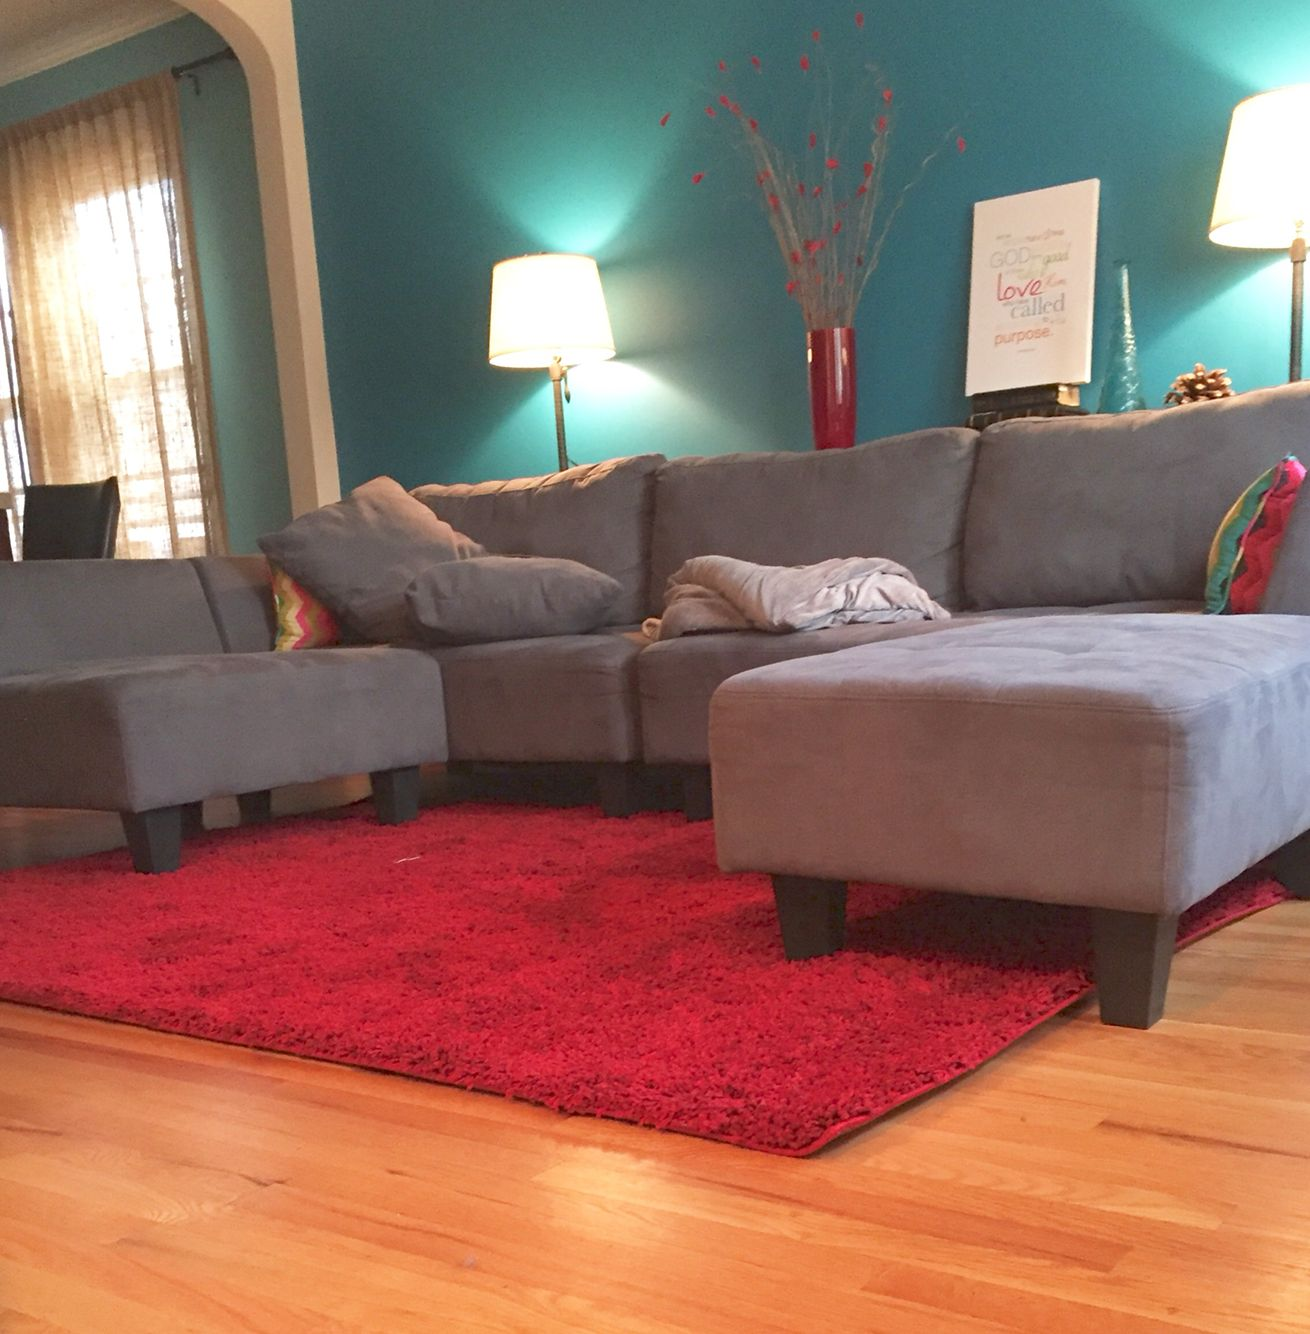 Living Room Idea Teal Blue Wall Grey Couch Ruby Red Rug